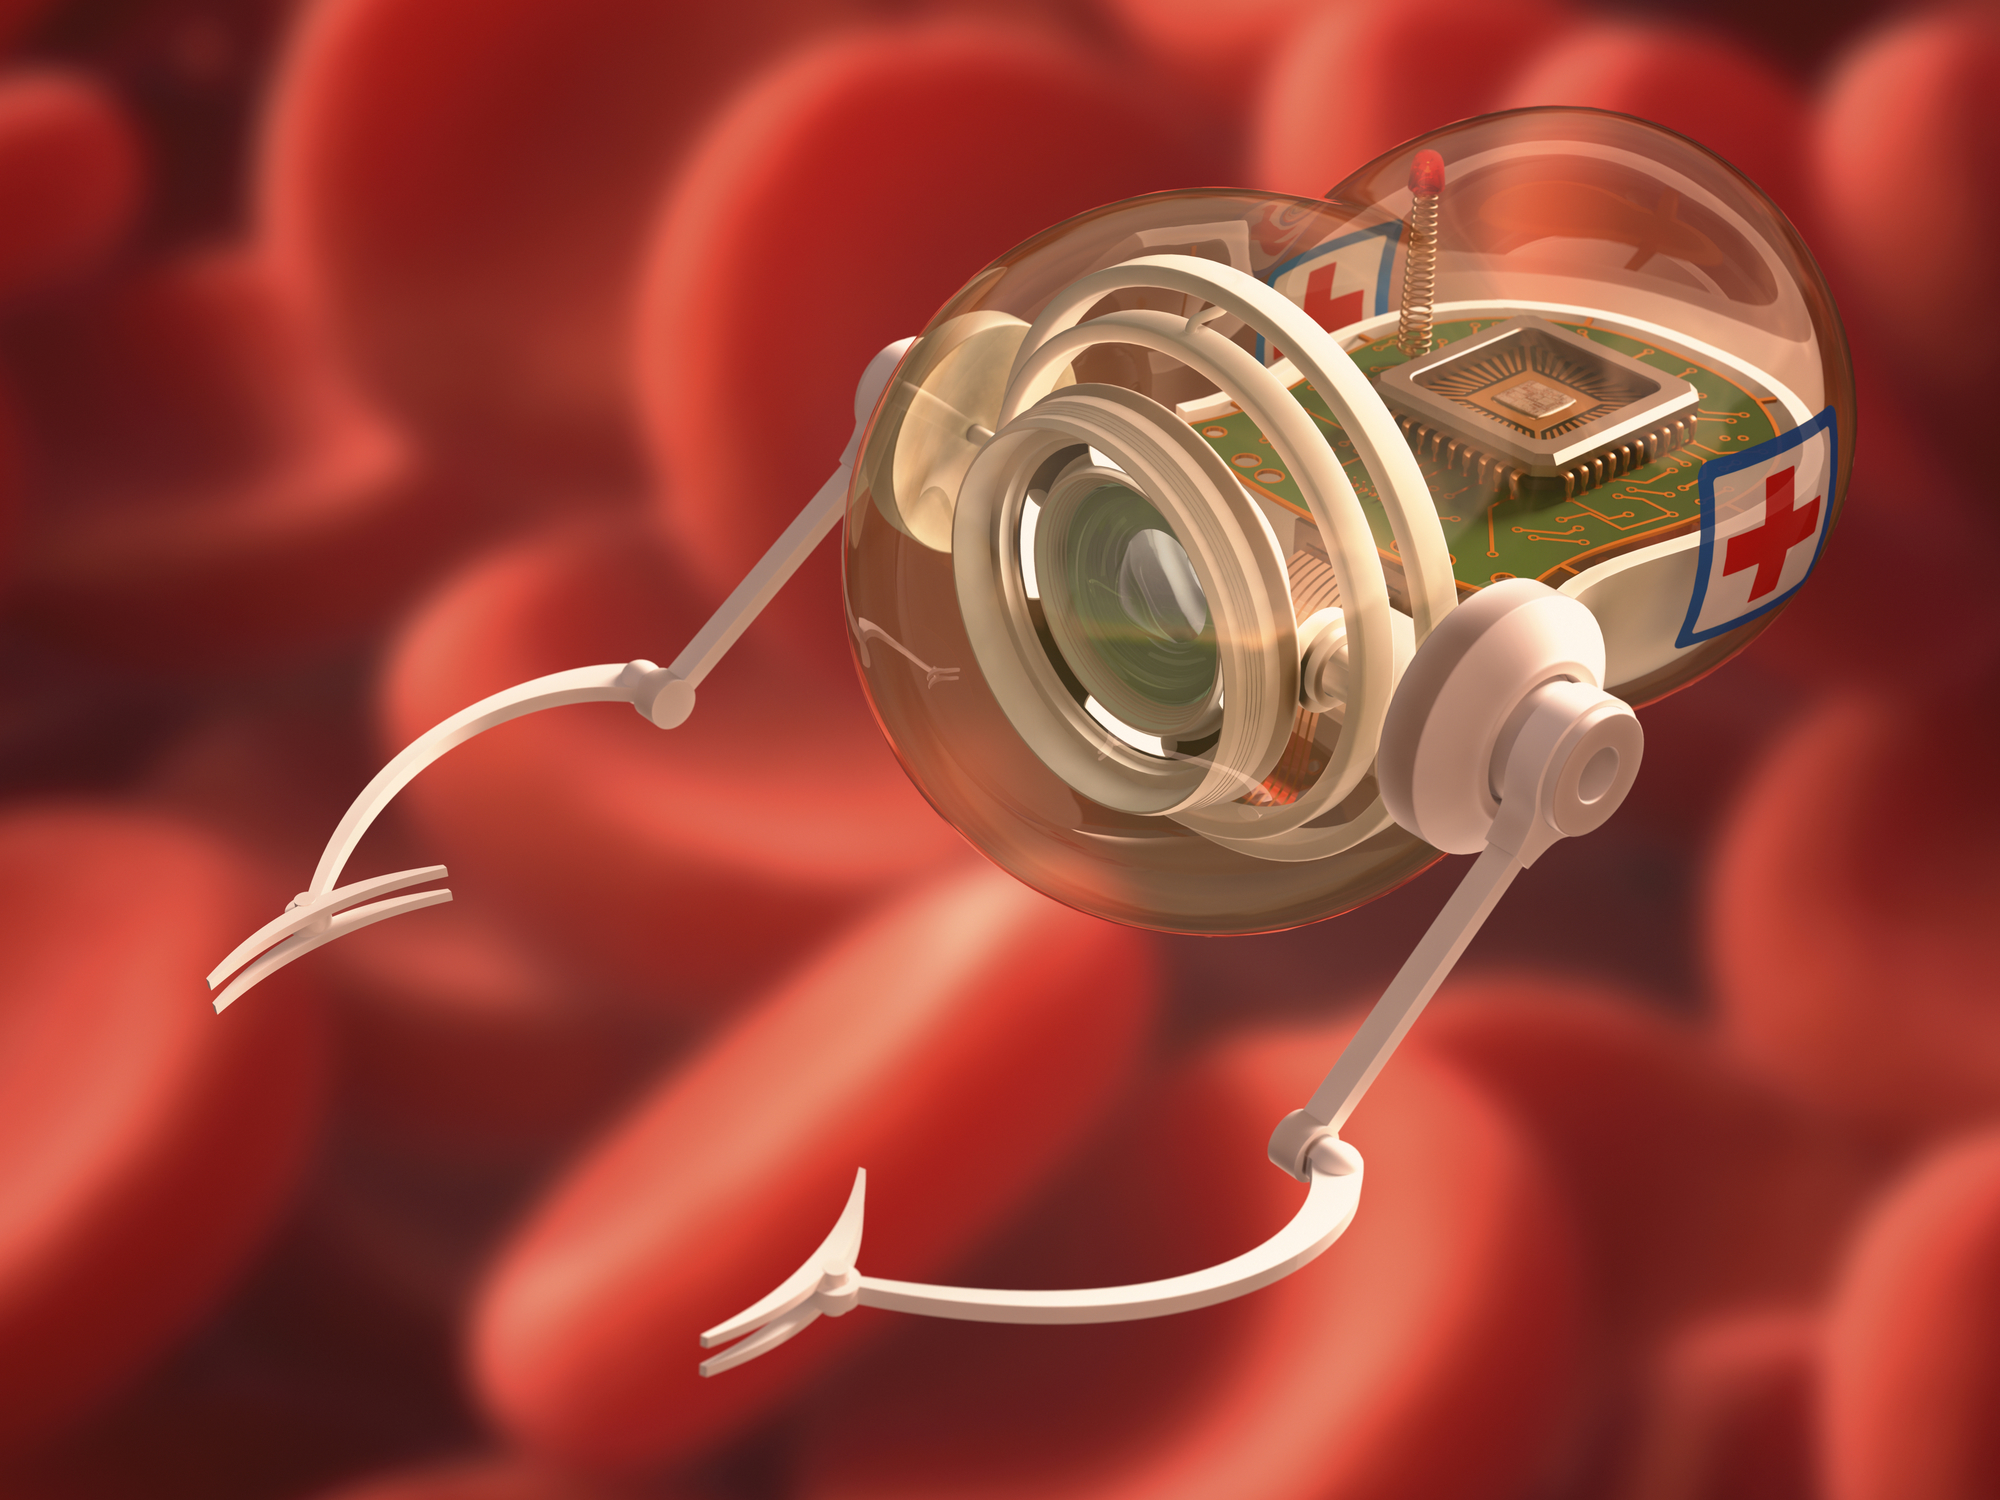 What if we could use nanobots to fight disease?